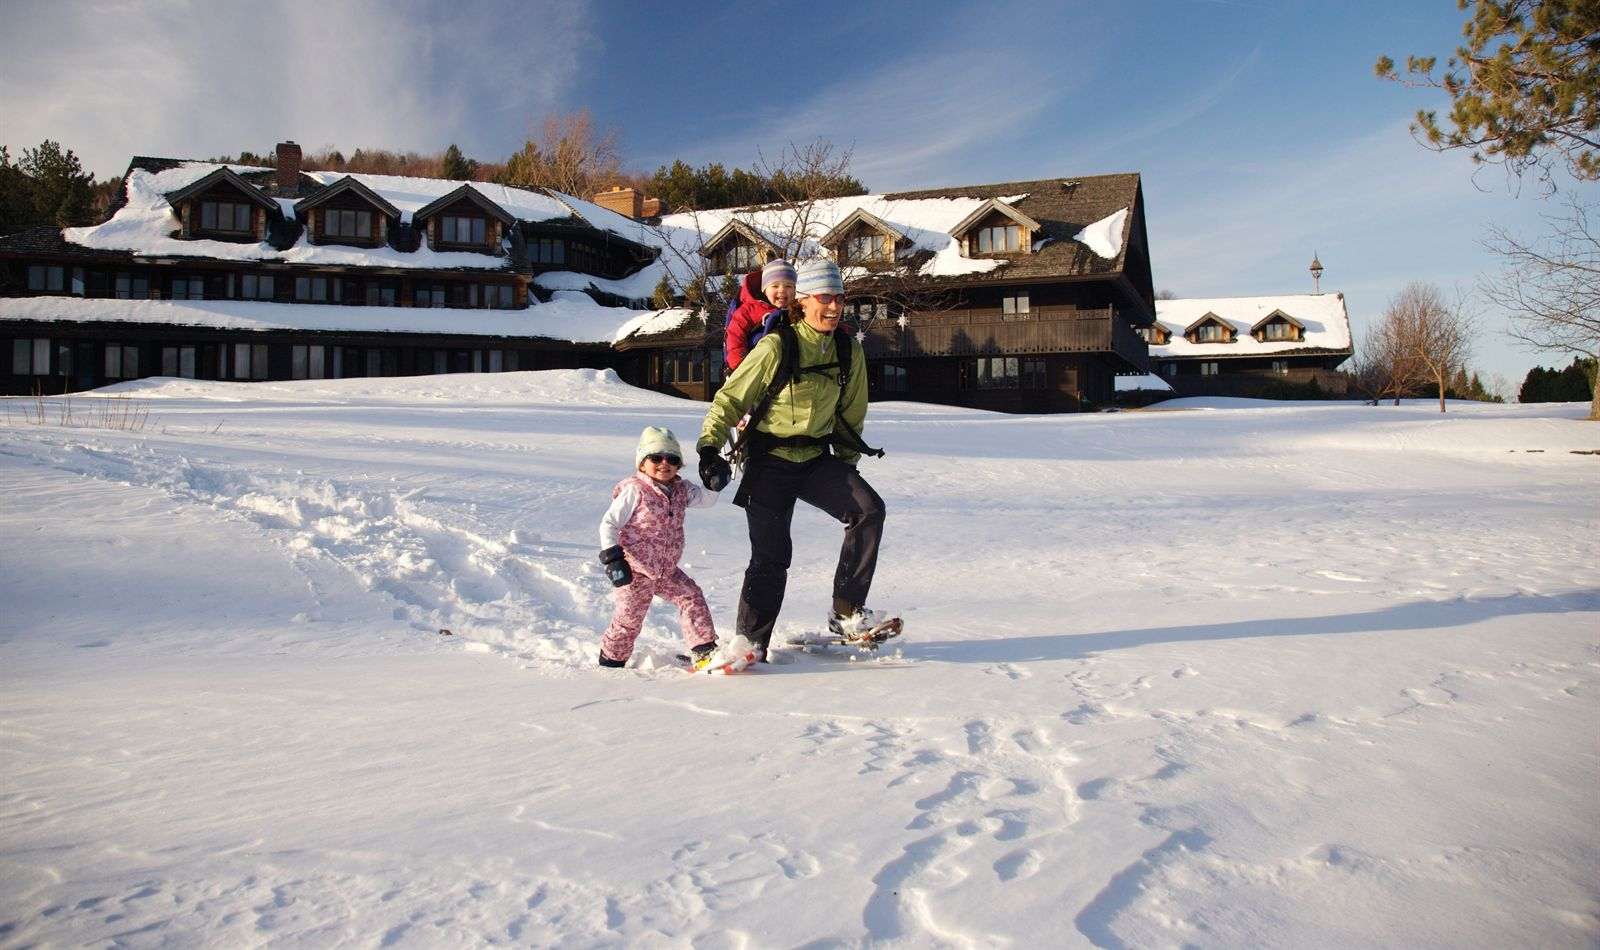 Skiing at our Resort in Stowe with our Seasonal Ski Pass